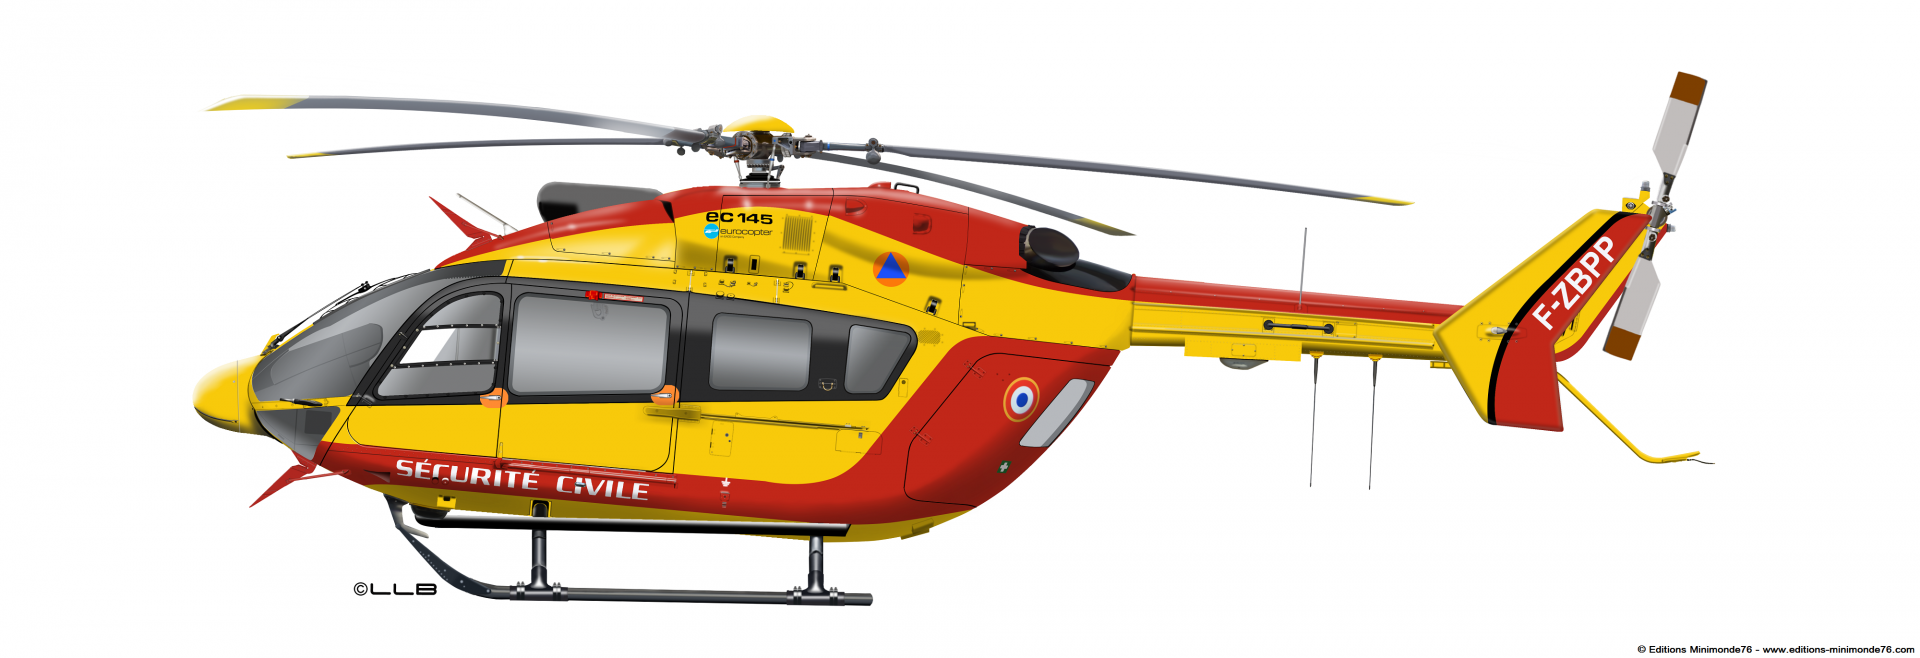 Ec145 securite civile dragon 76